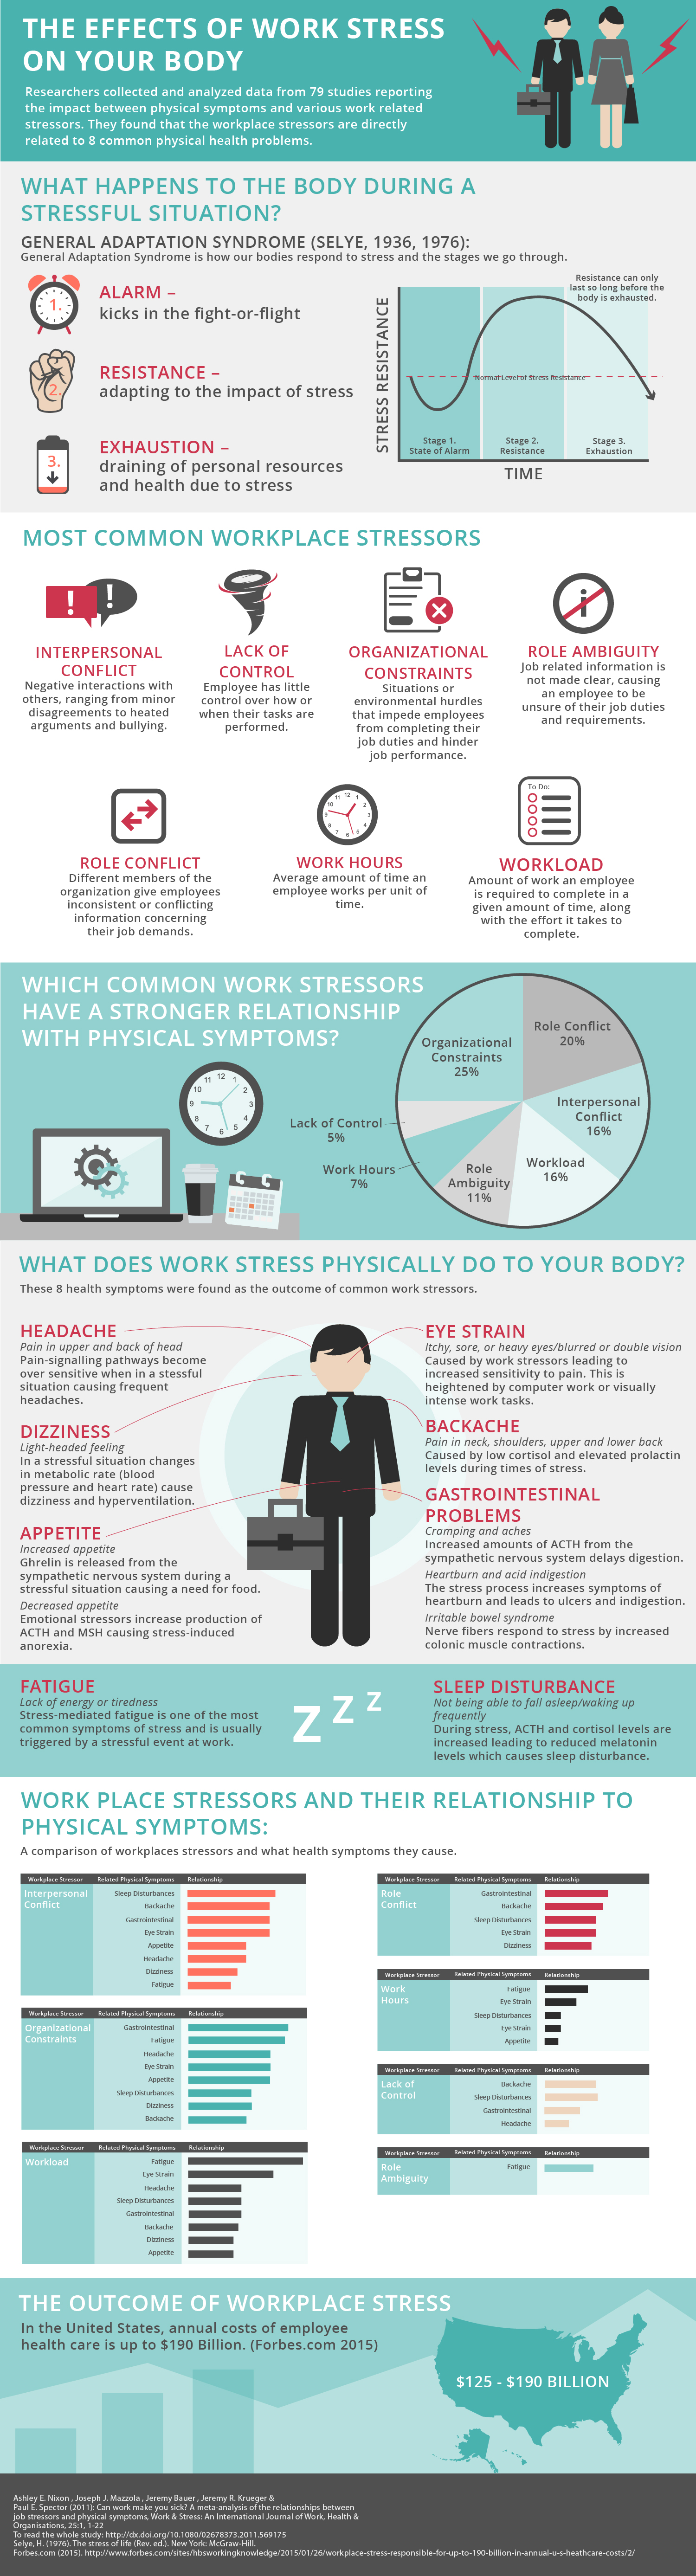 Negative Effects Of Work Stress On Your Body Infographic